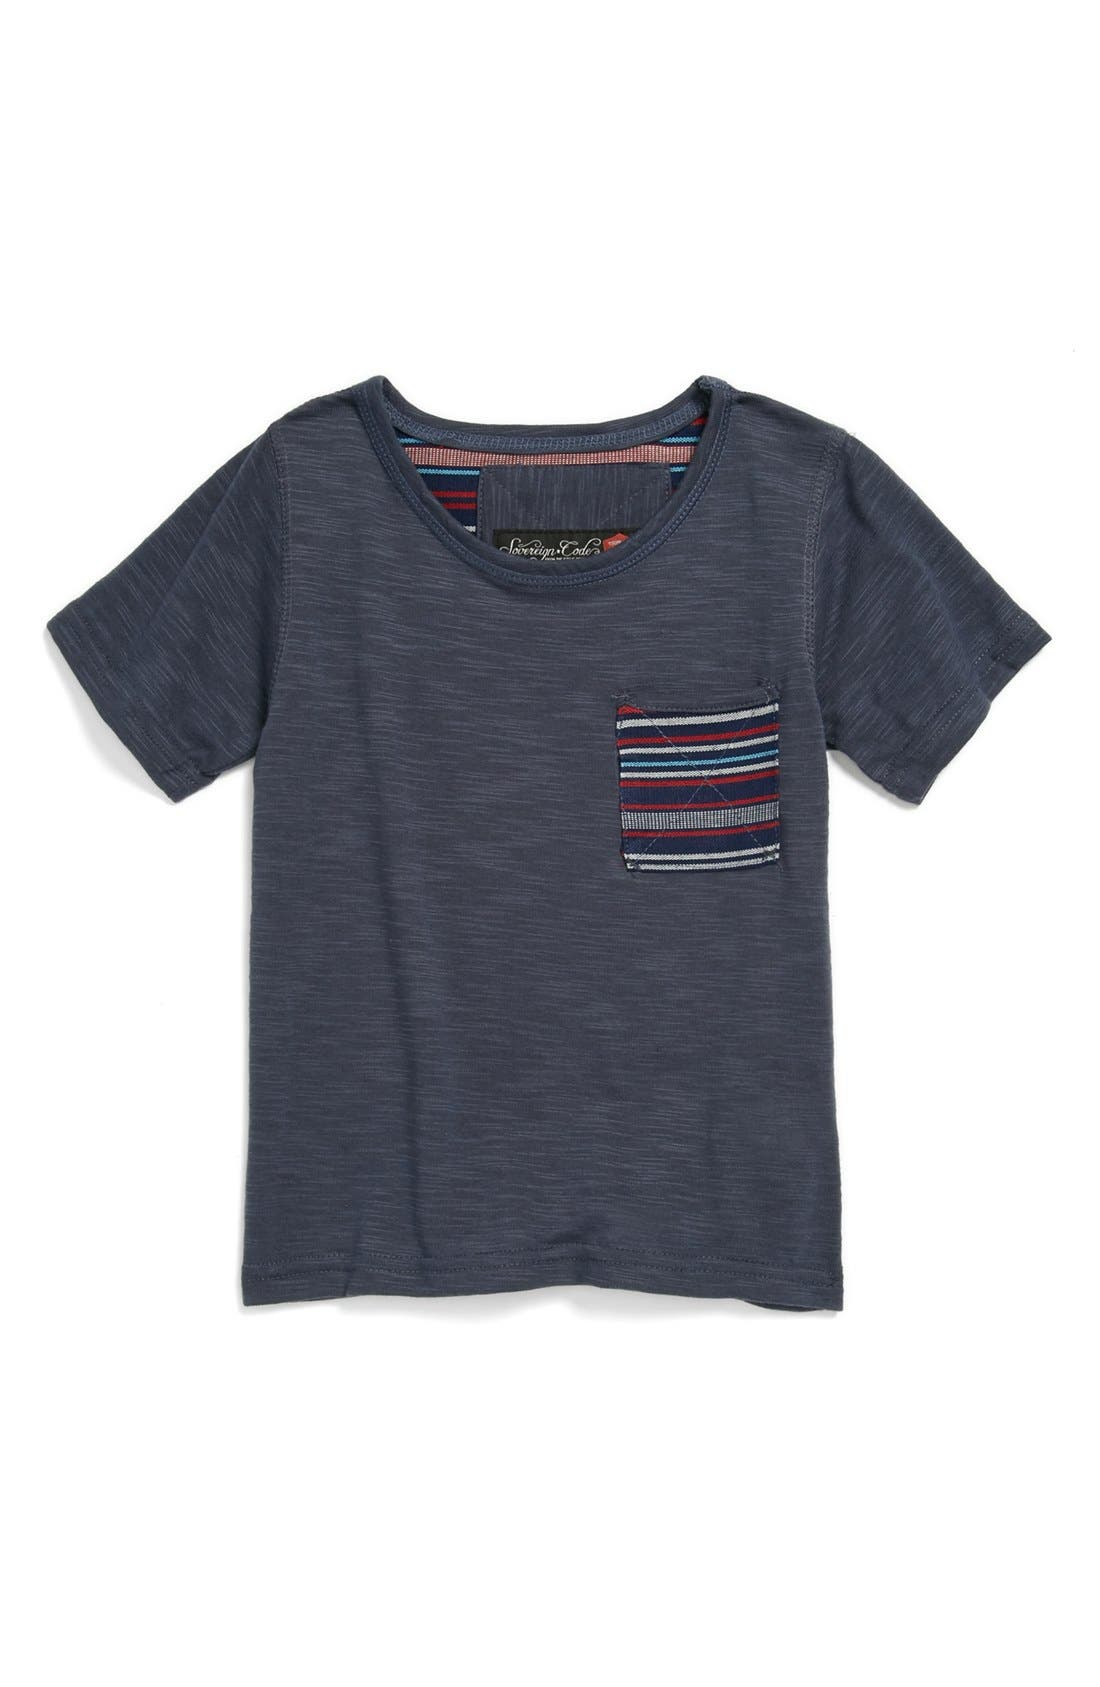 Main Image - Sovereign Code Contrast Pocket T-Shirt (Toddler Boys)